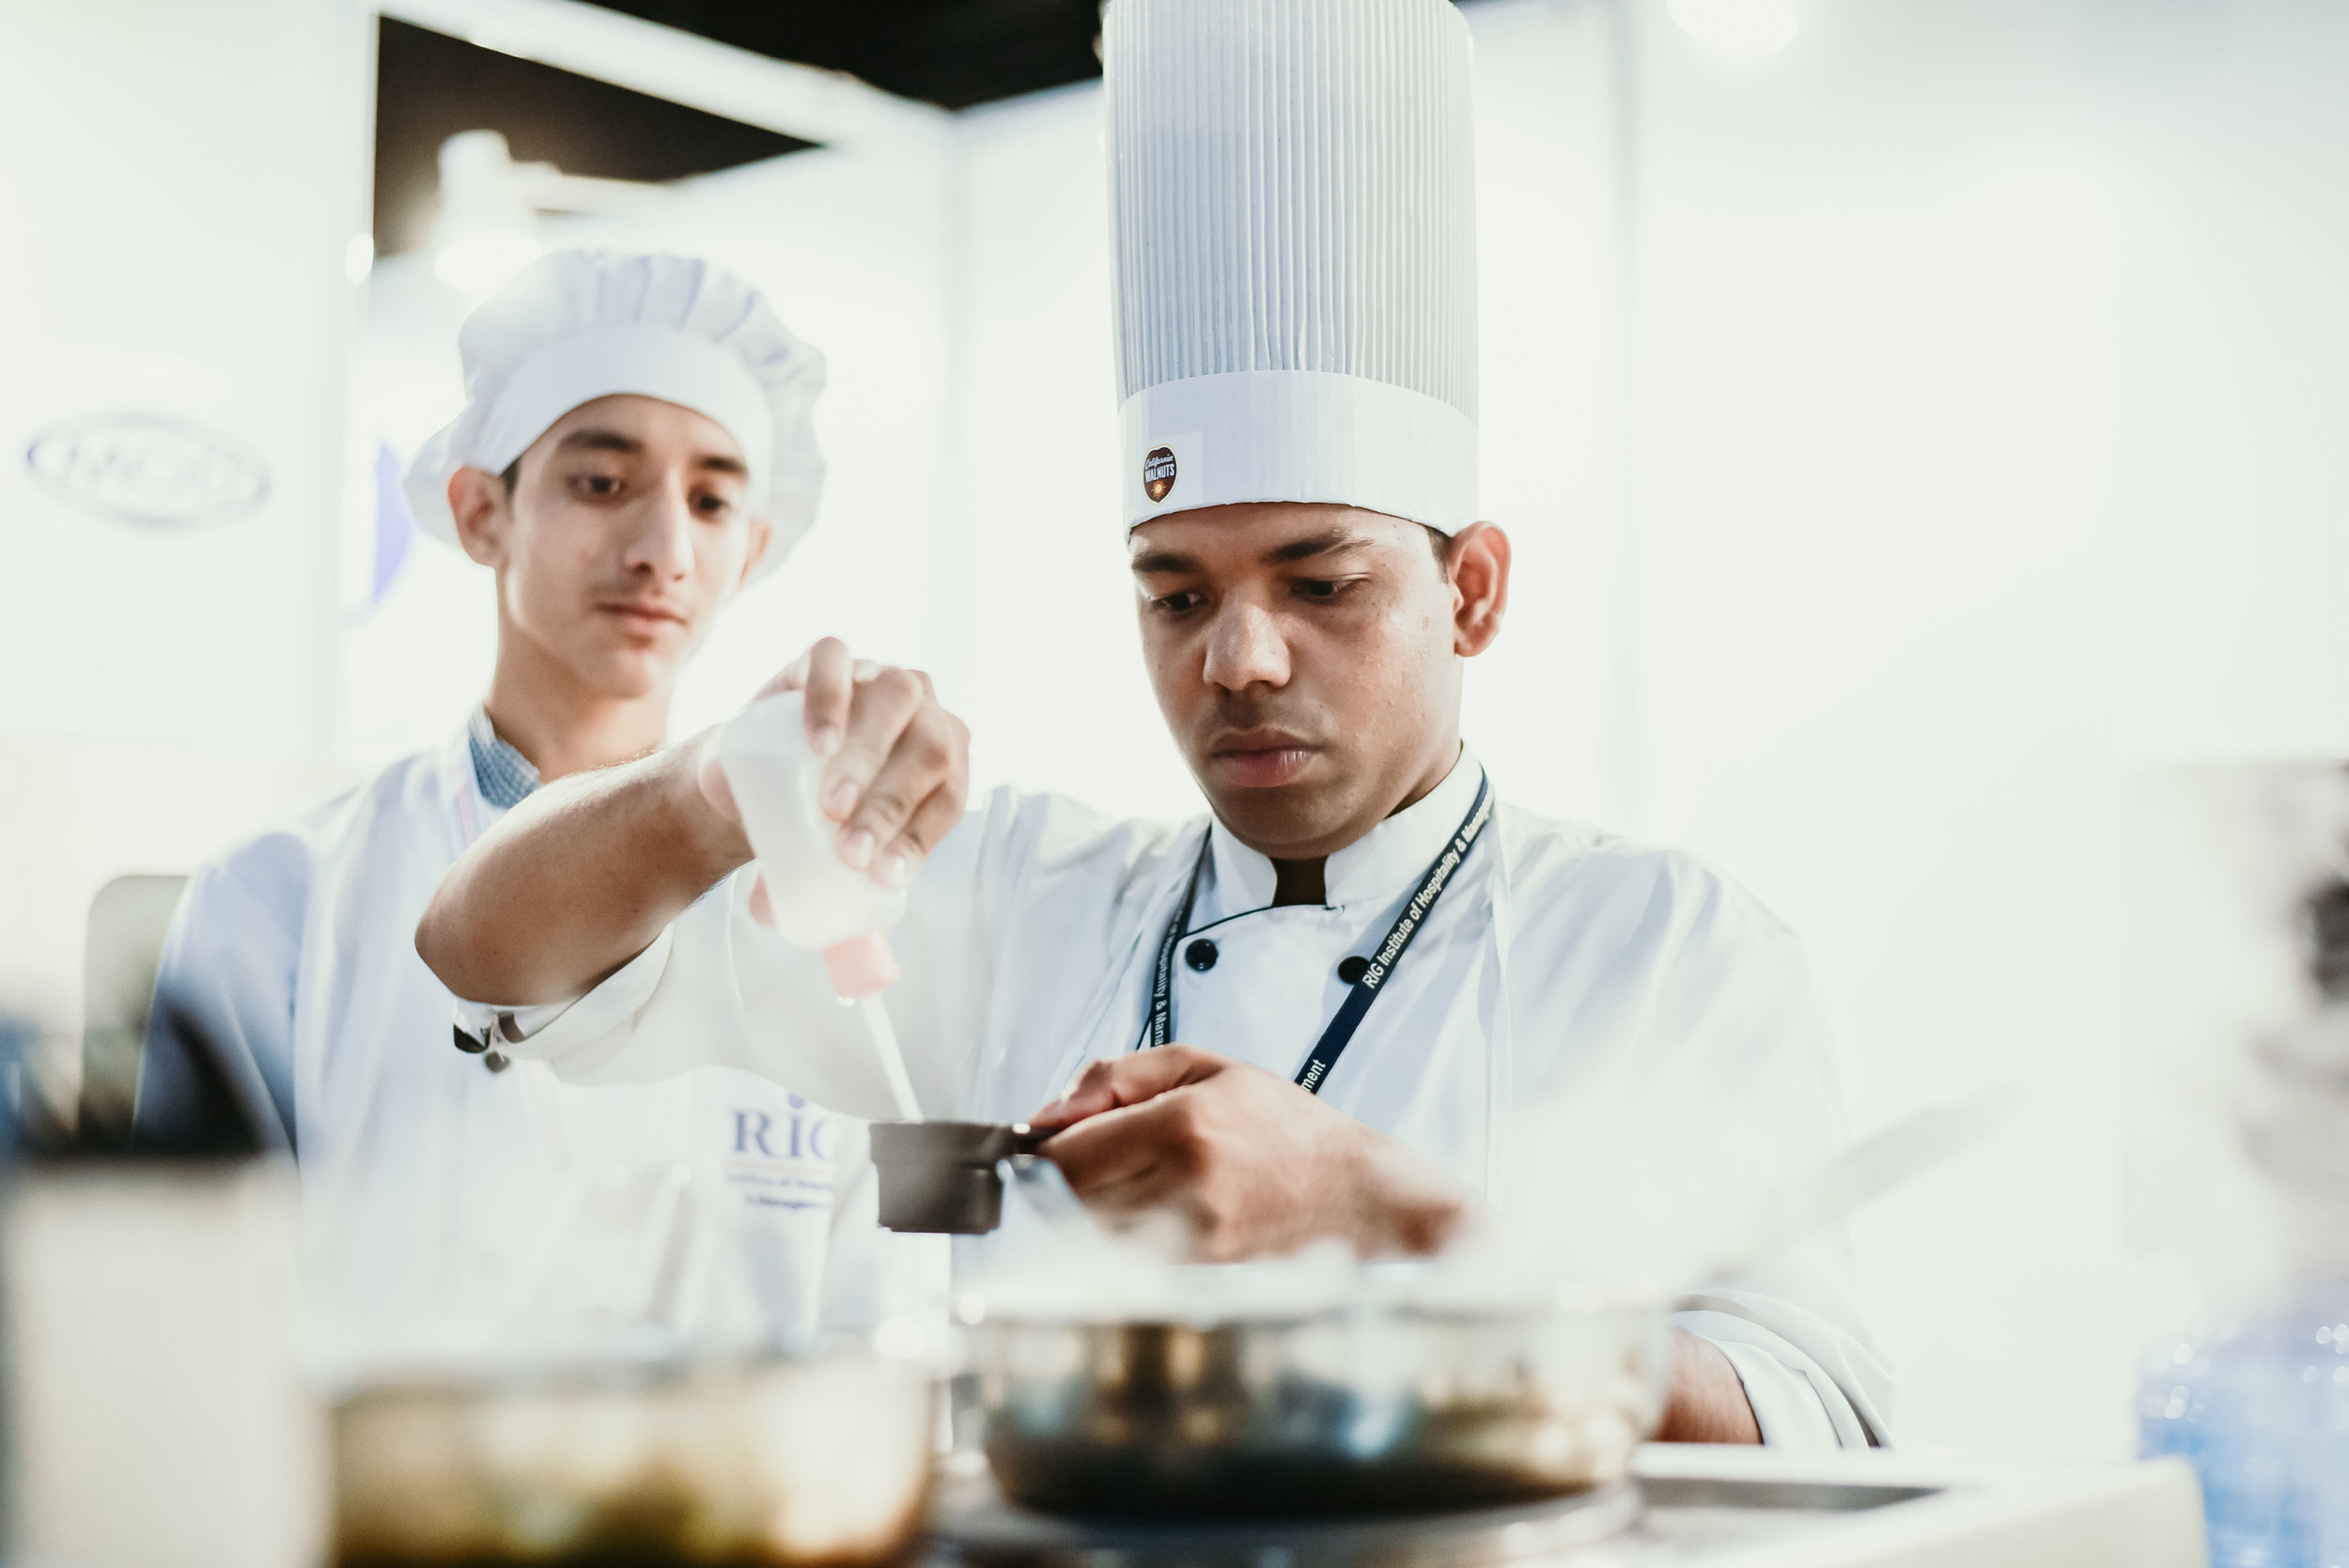 Culinary Competitions